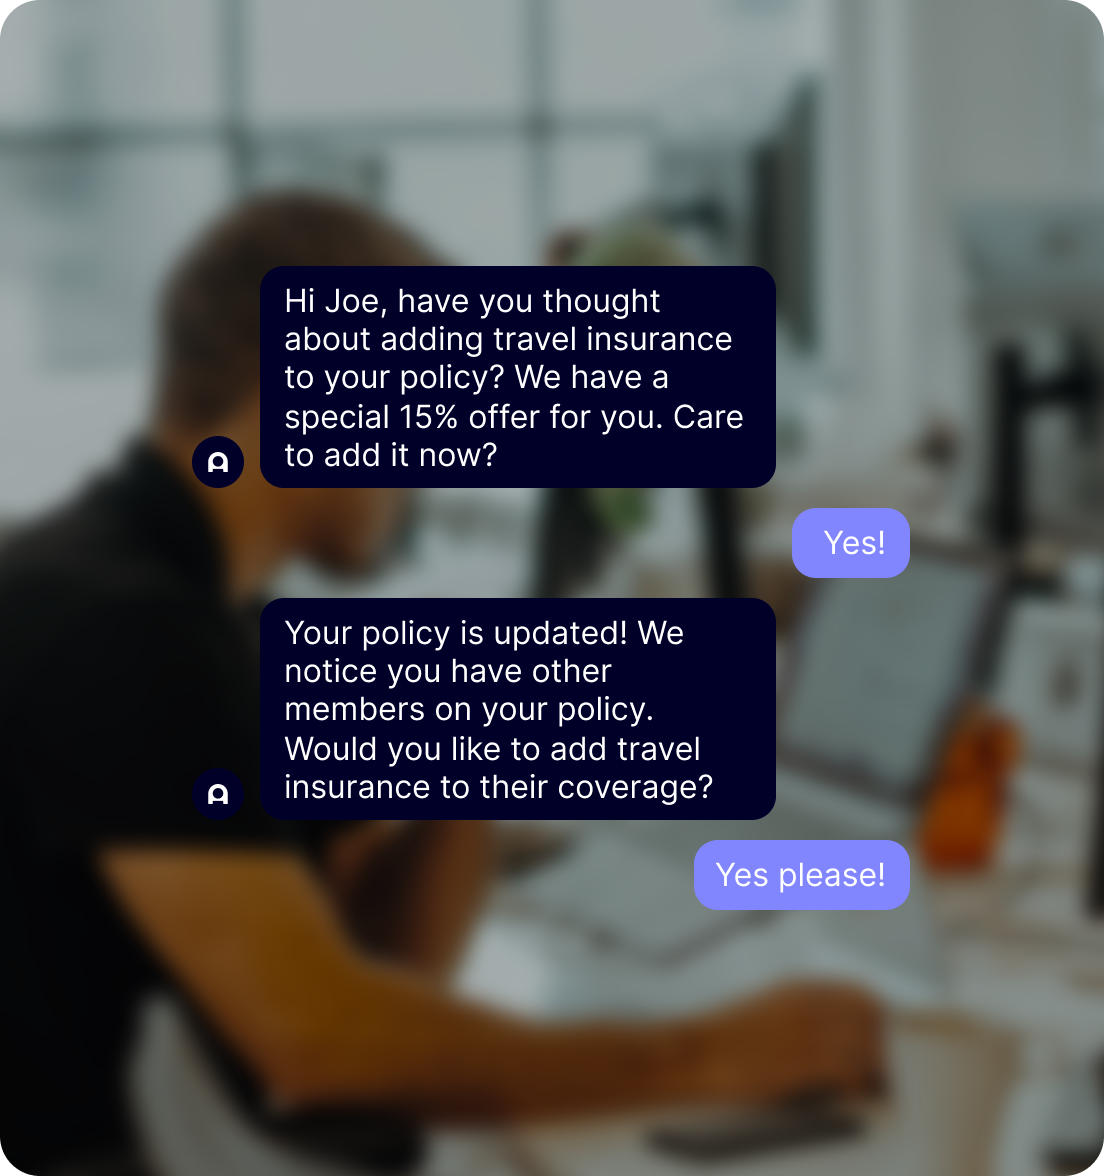 automate actions & generate revenue with the best chatbot for insurance industry